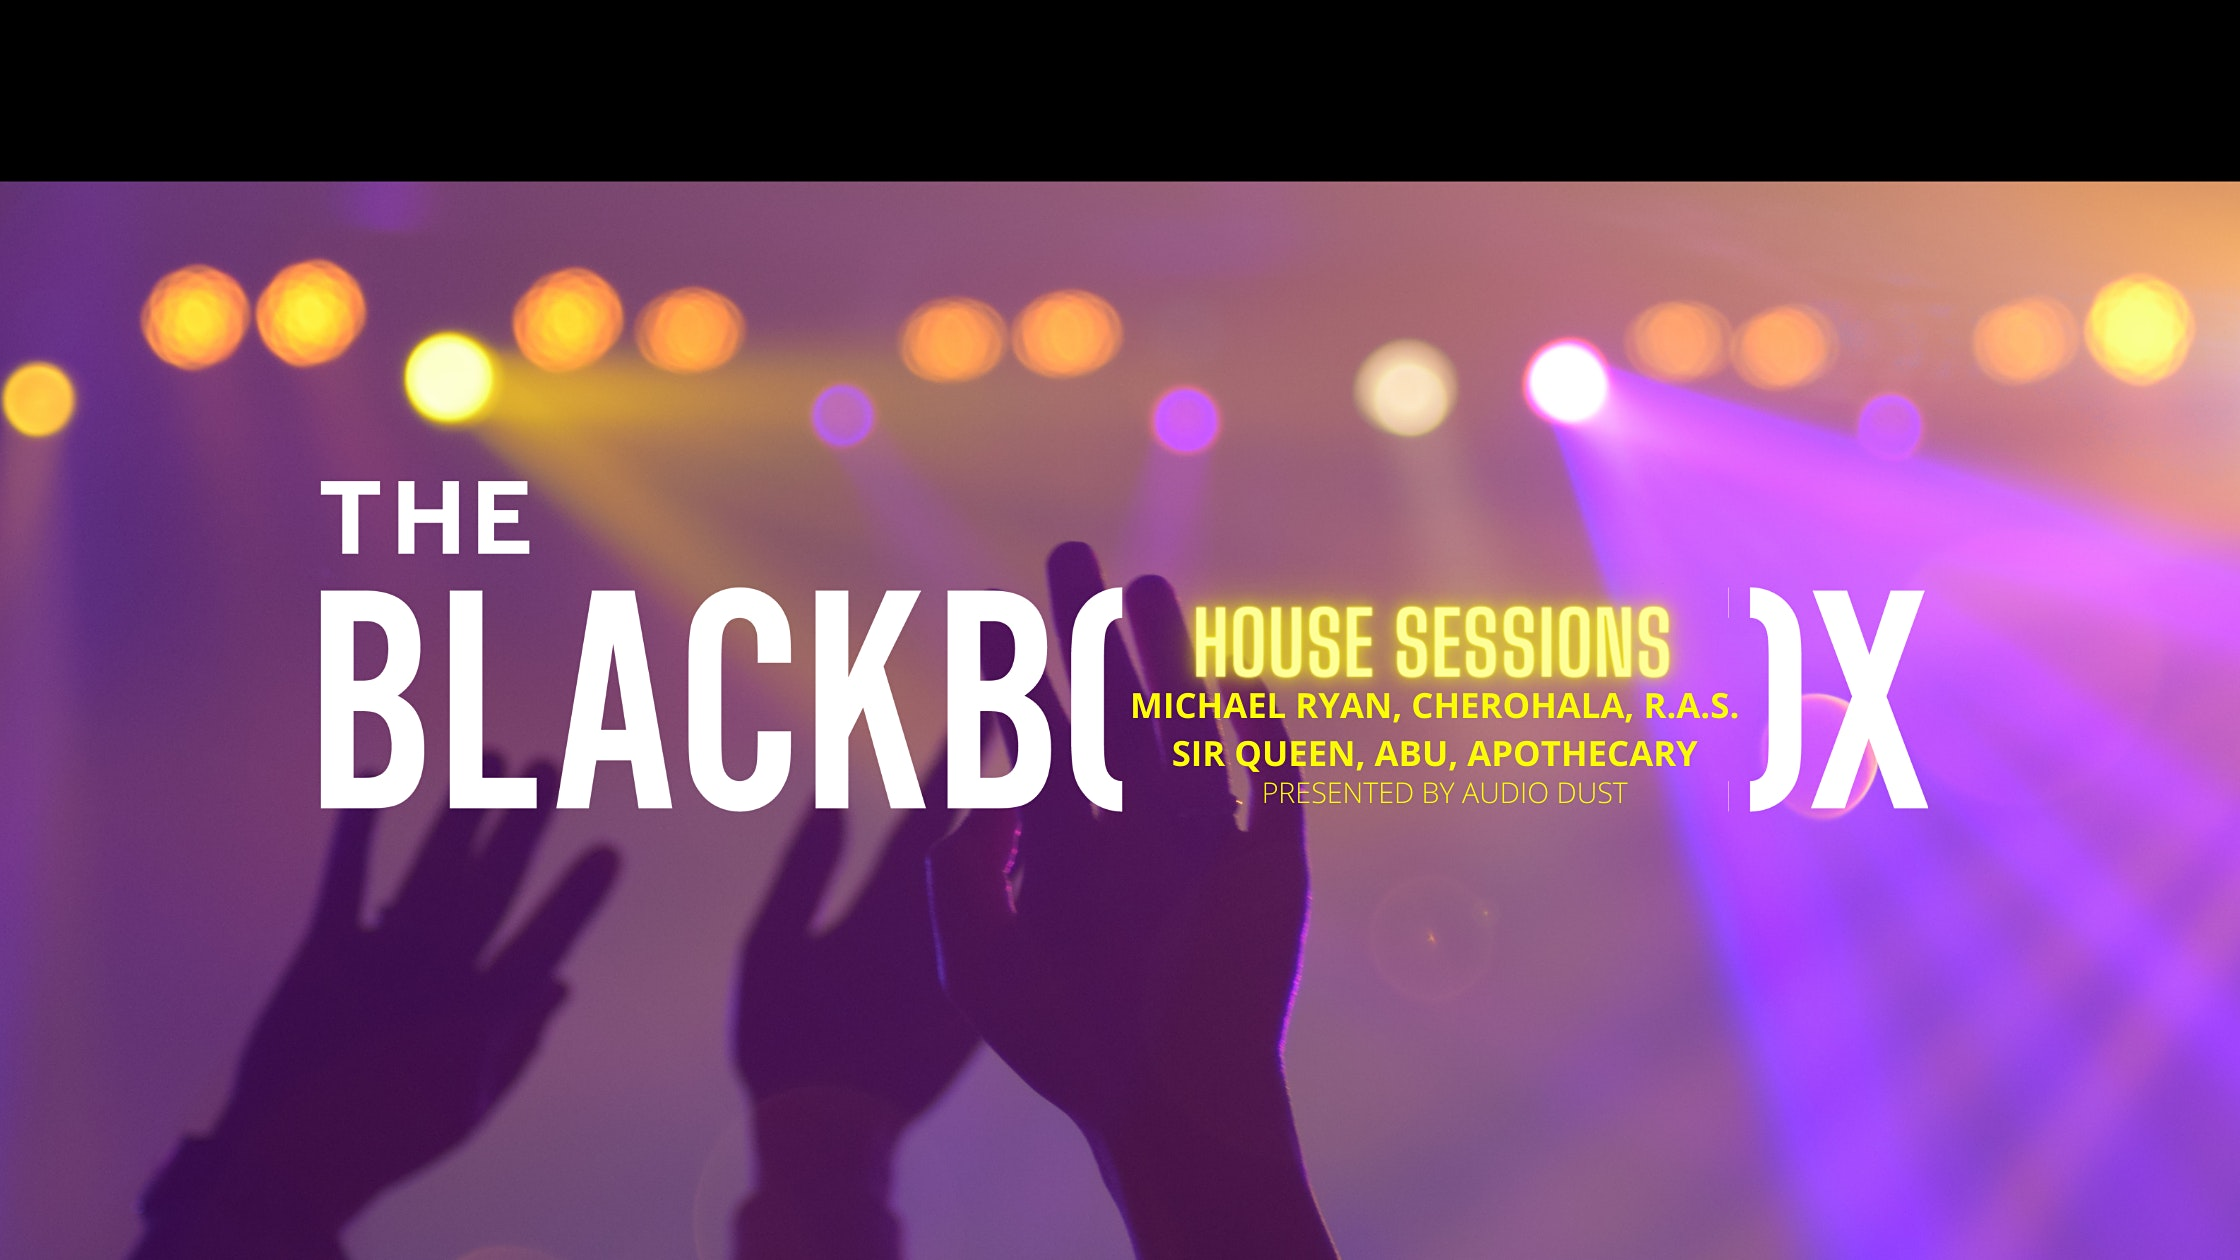 FRI, JUL 16, 2021 - LIVE AT THE BLACK BOX:The Black Box House Sessions  presented by Audio Dust